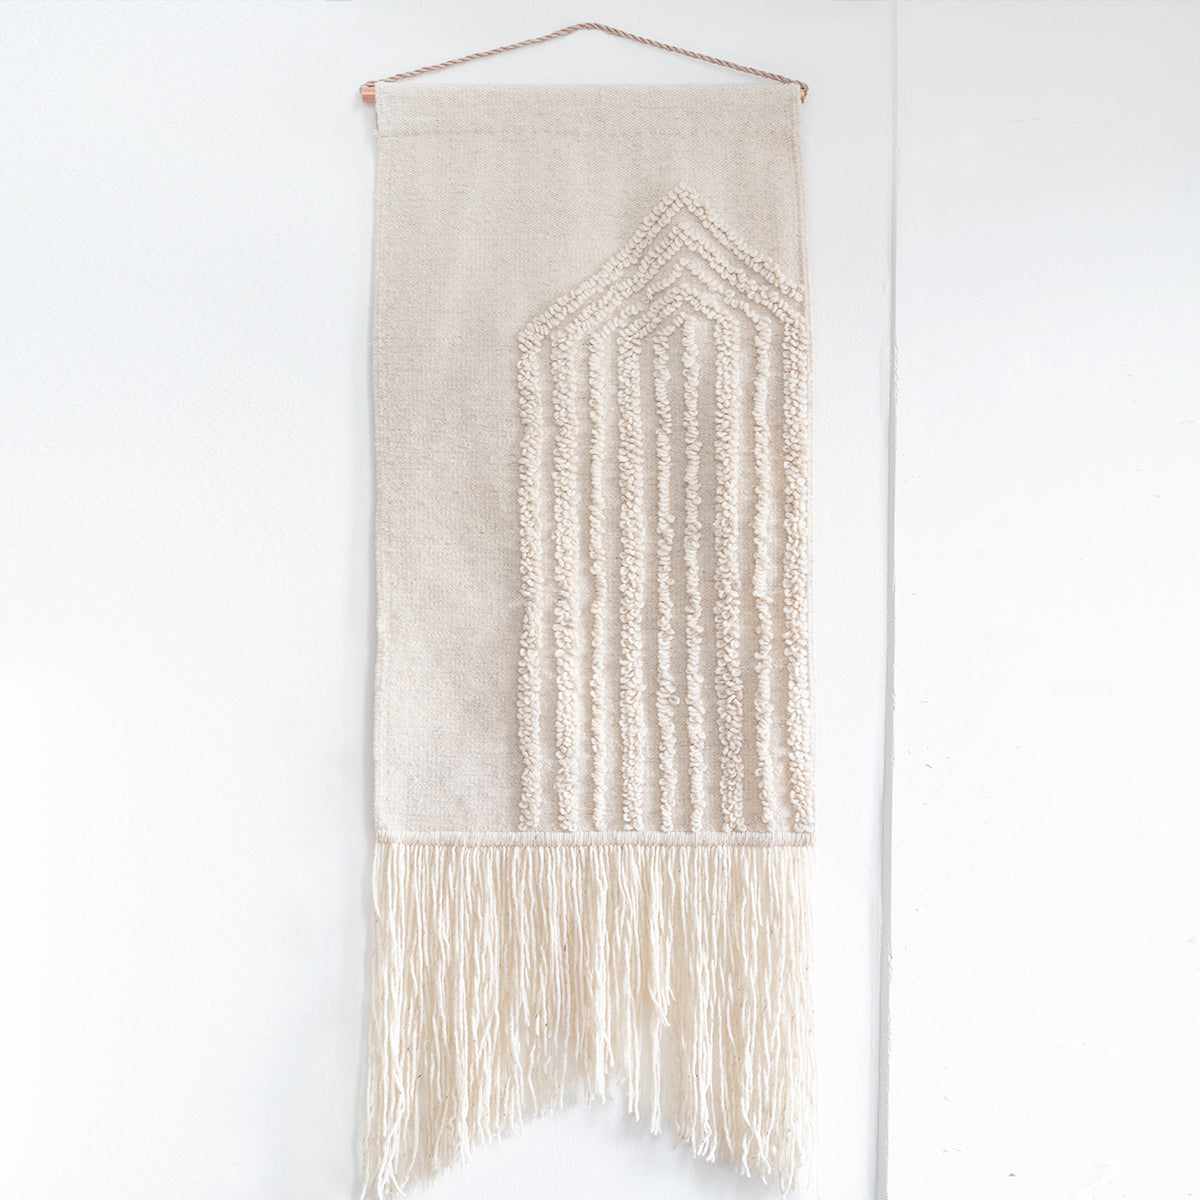 "TAPESTRY HAND WOVEN WALL HANGING ""San Miguel"" BY CURA COLLECTION"